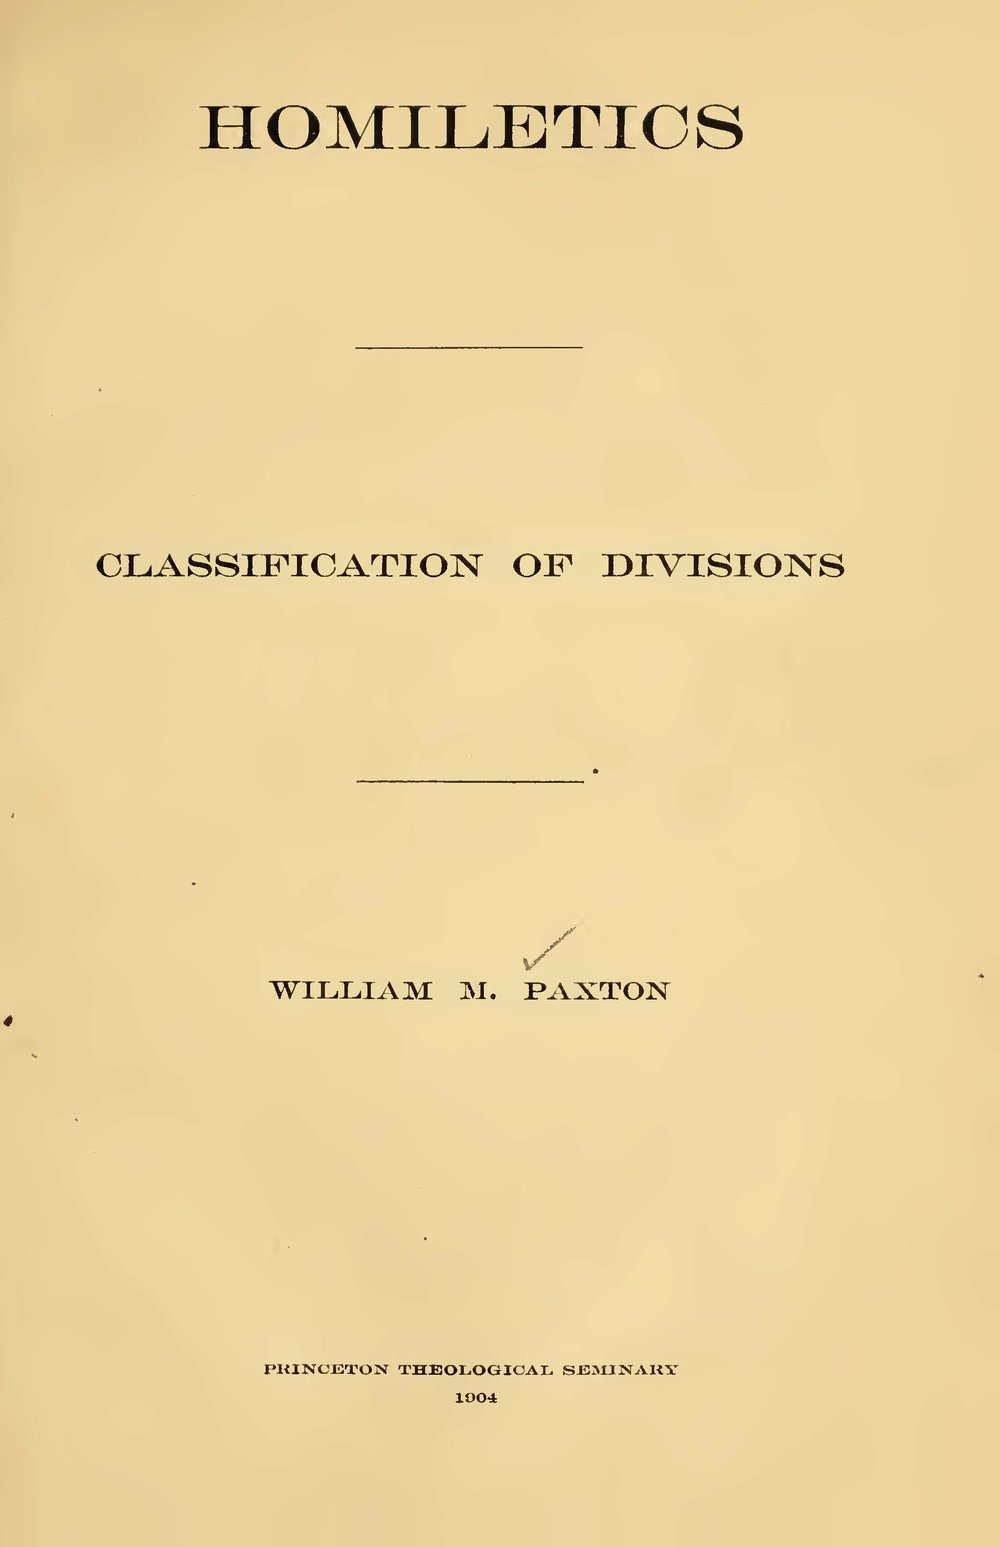 Paxton, William Miller, Homiletics Classification of Divisions Title Page.jpg